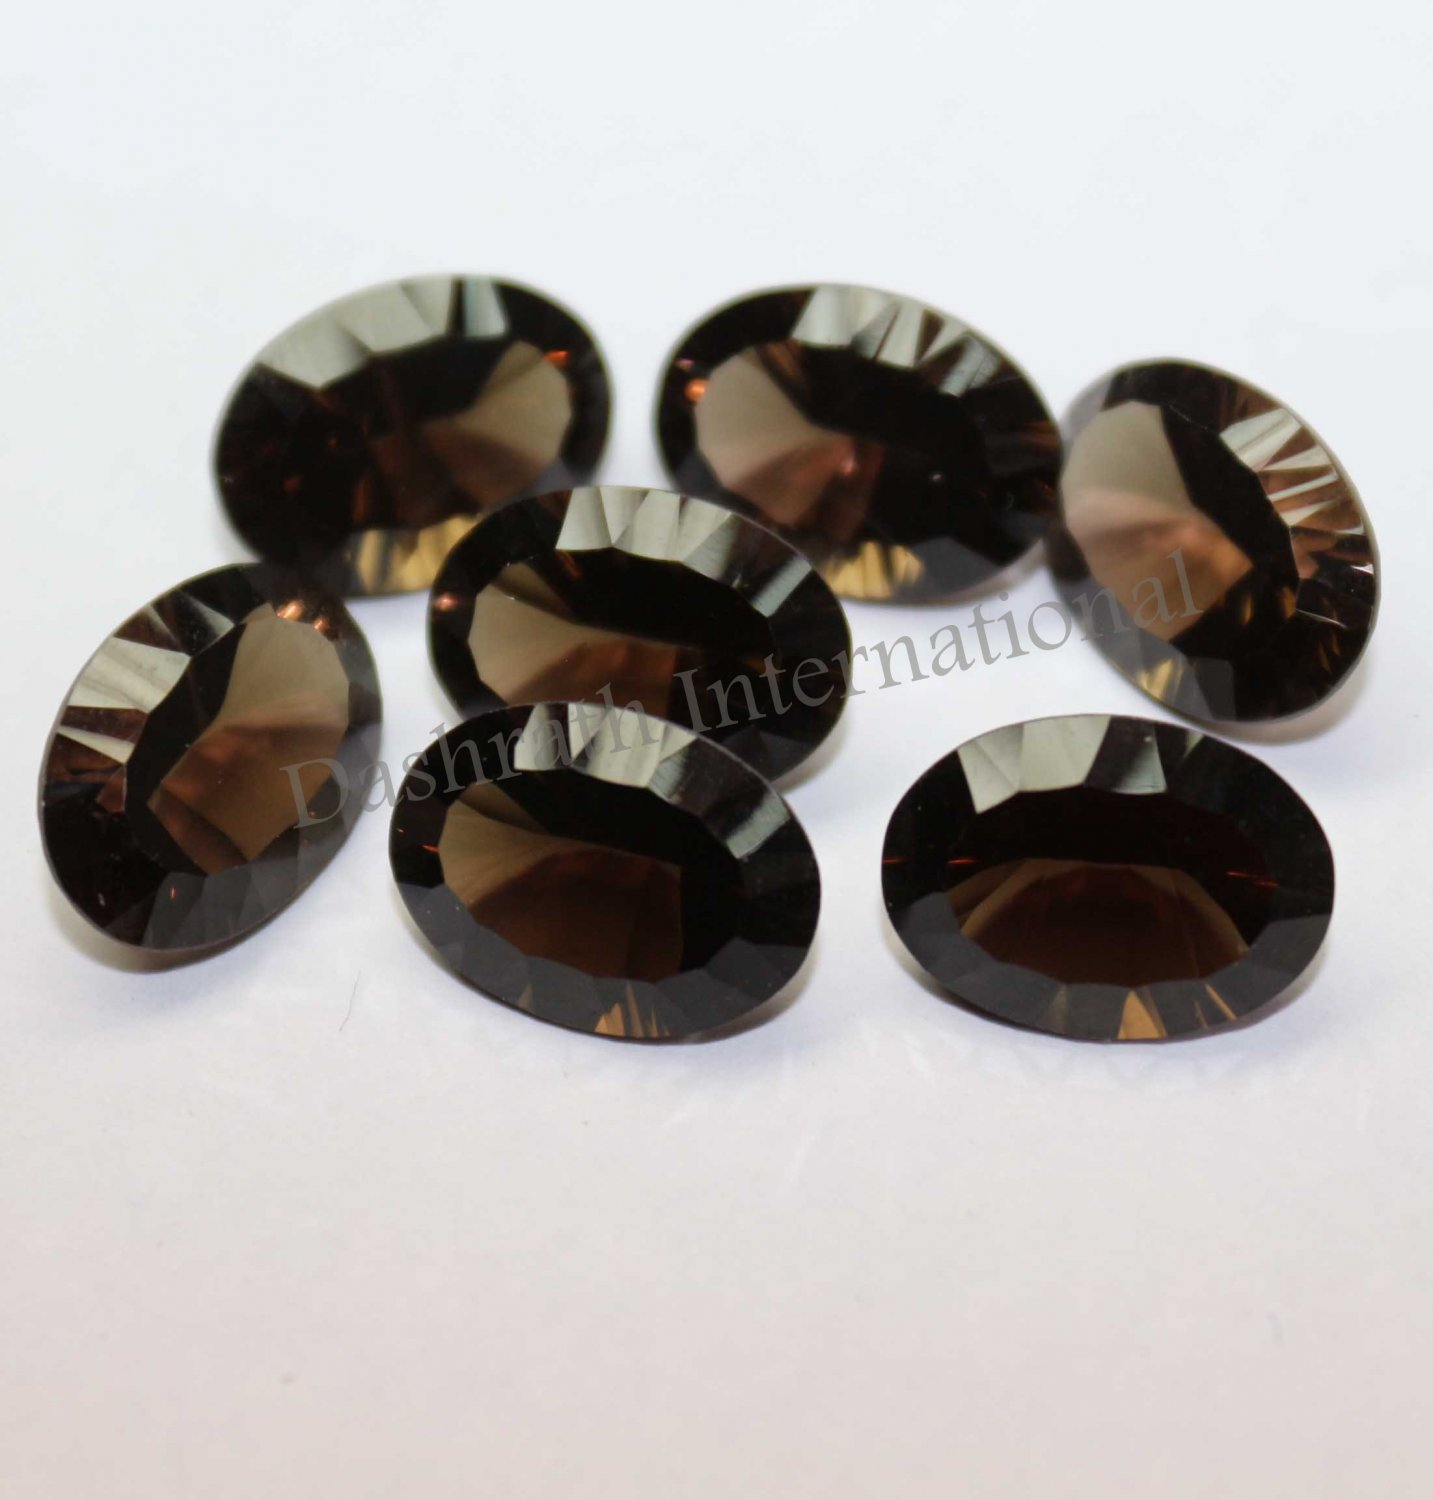 8x10mm Natural Smoky Quartz Concave Cut  Oval  10 Pieces Lot  (SI) Top Quality  Loose Gemstone